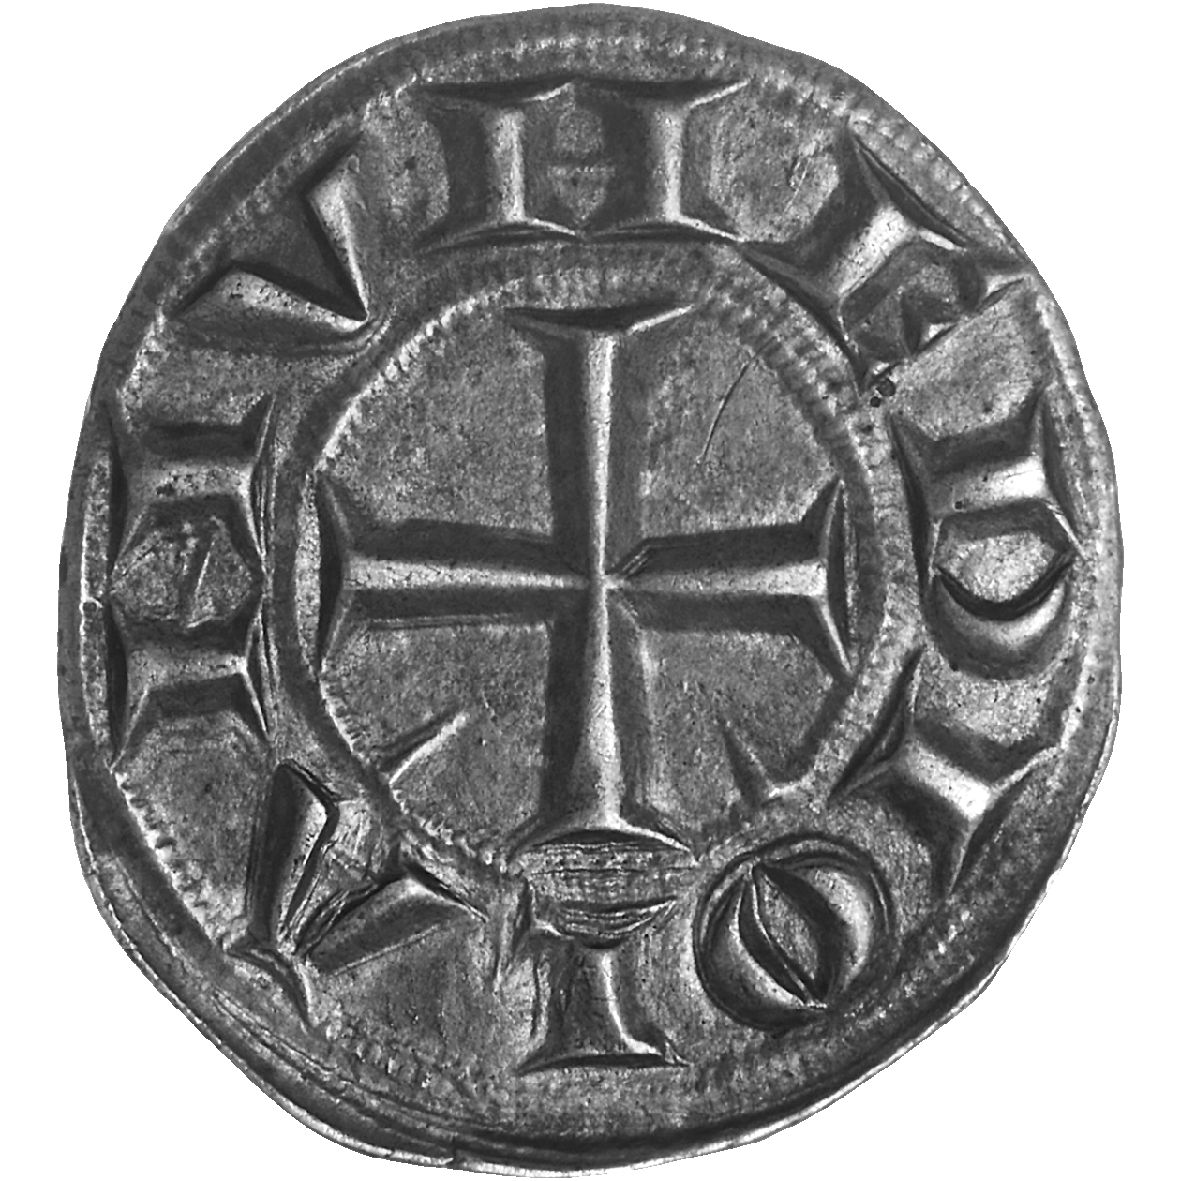 Holy Roman Empire, Frederick II of Hohenstaufen, Grosso of 6 Denarii (reverse)